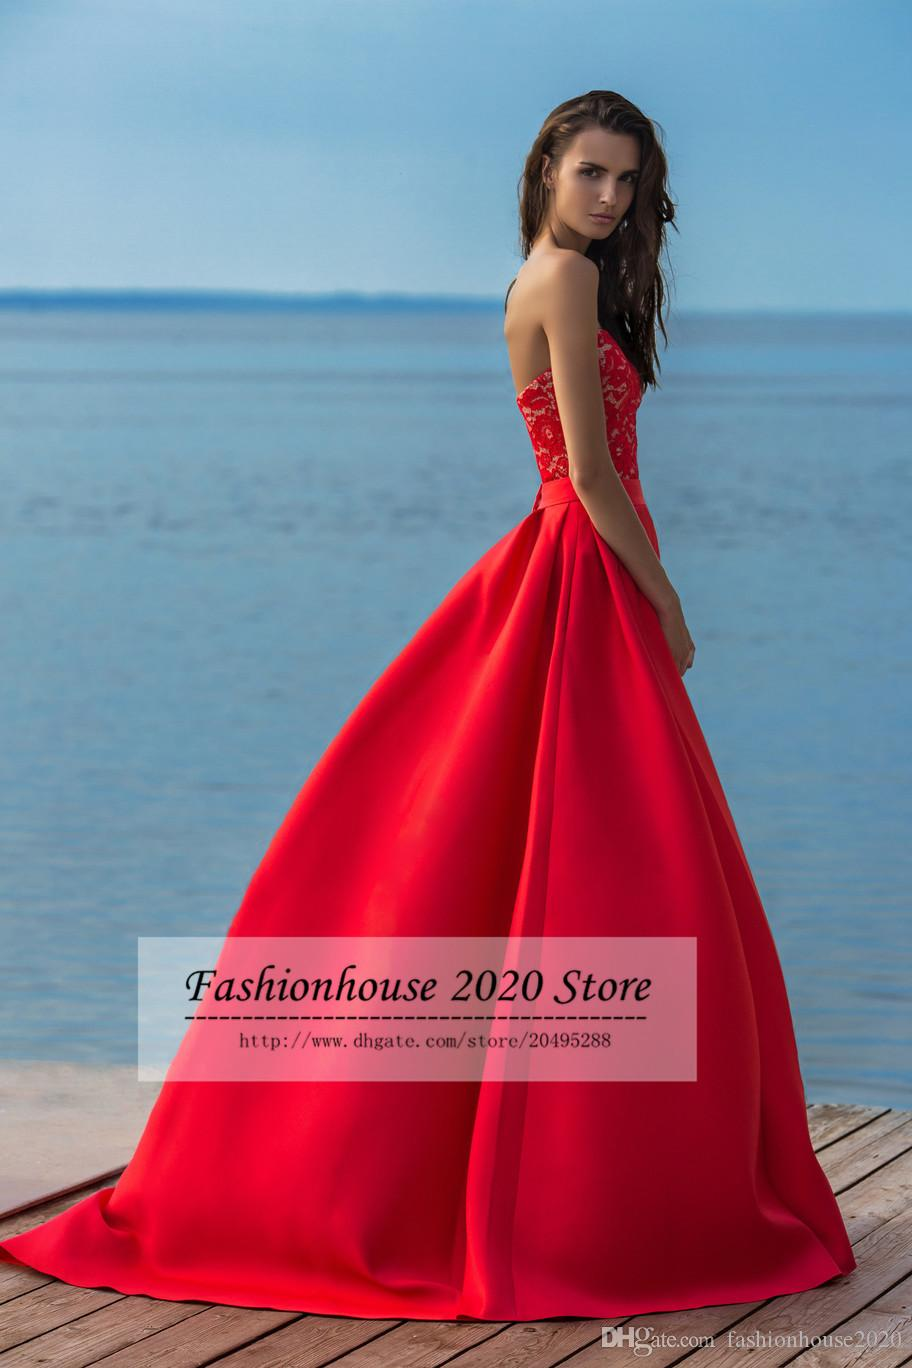 Best Beetlejuice Red Wedding Dress Contemporary - Styles & Ideas ...